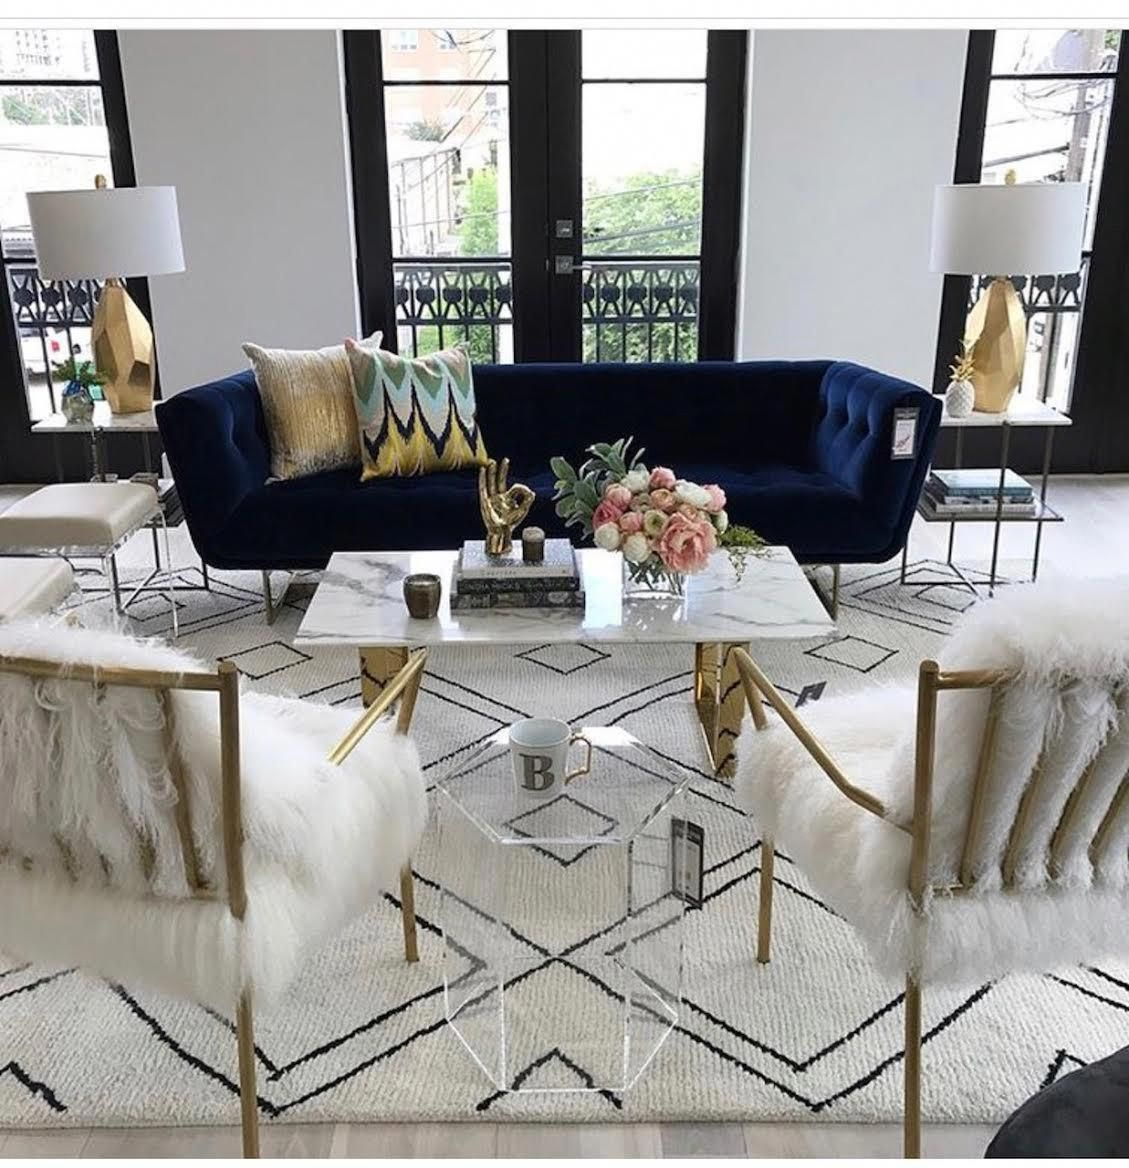 Giving Your Interiors A Quick Facelift Olivia Palermo Lovetheseinteriorplanningtipsandideas With Images Glam Living Room Decor Glam Living Room Velvet Living Room